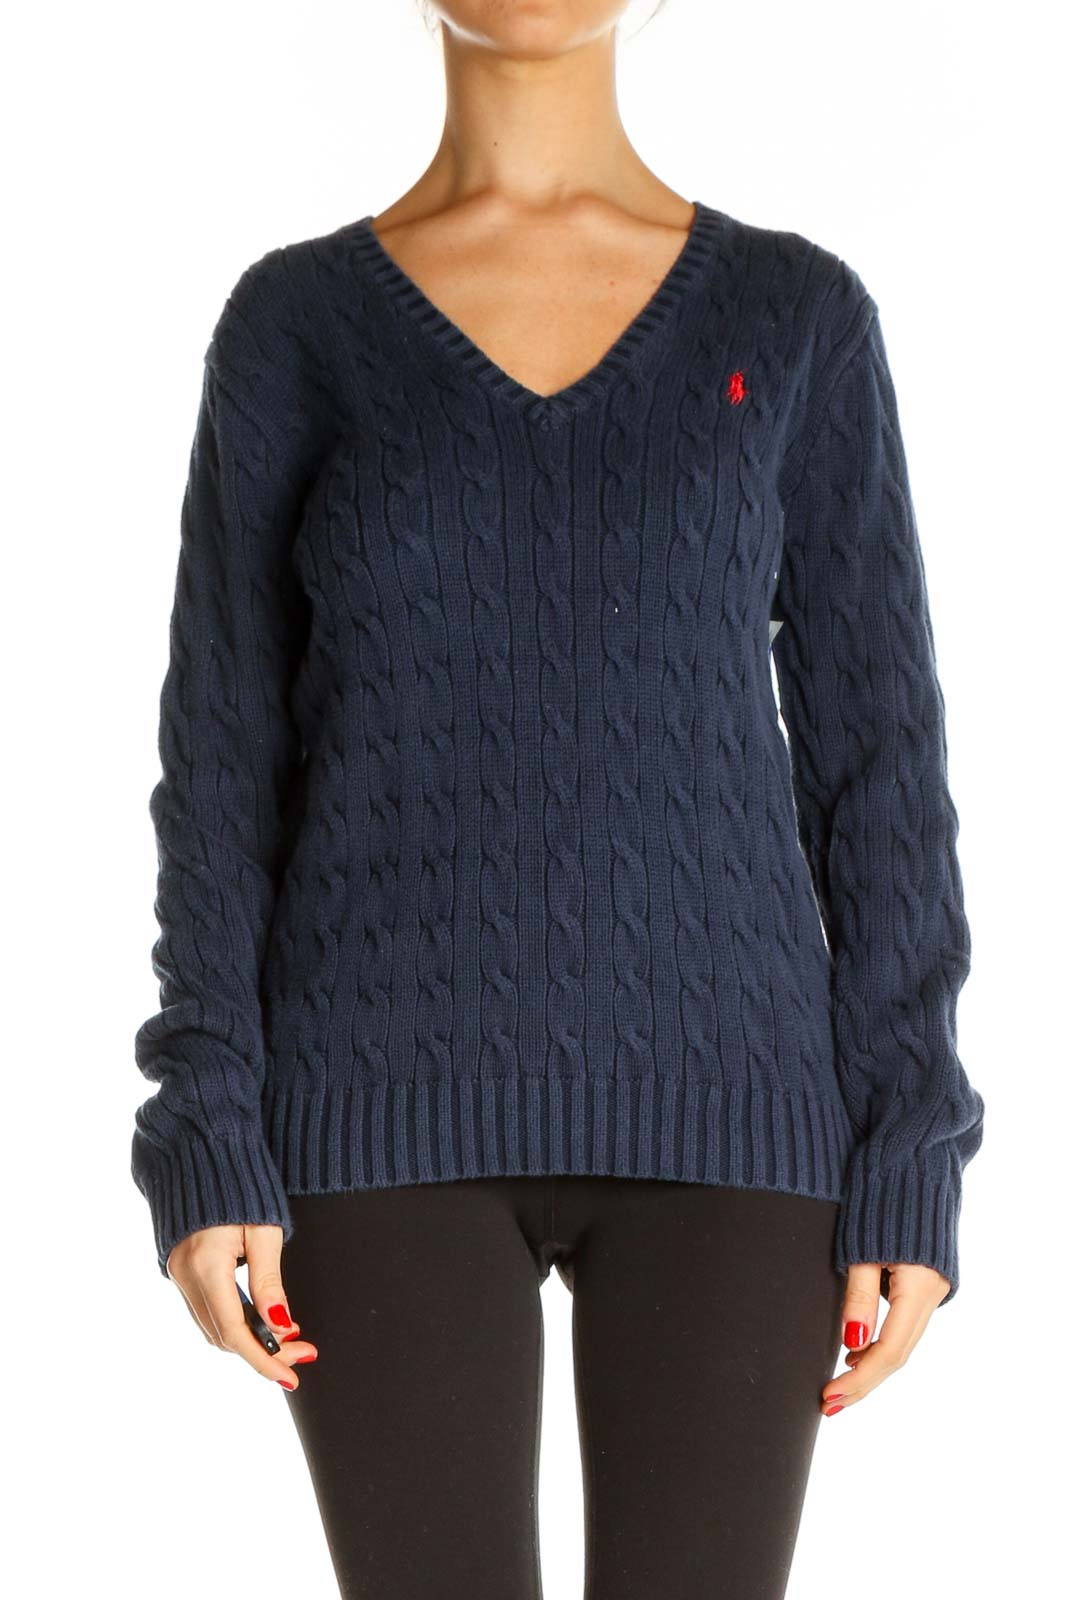 Blue Textured All Day Wear Sweater Front